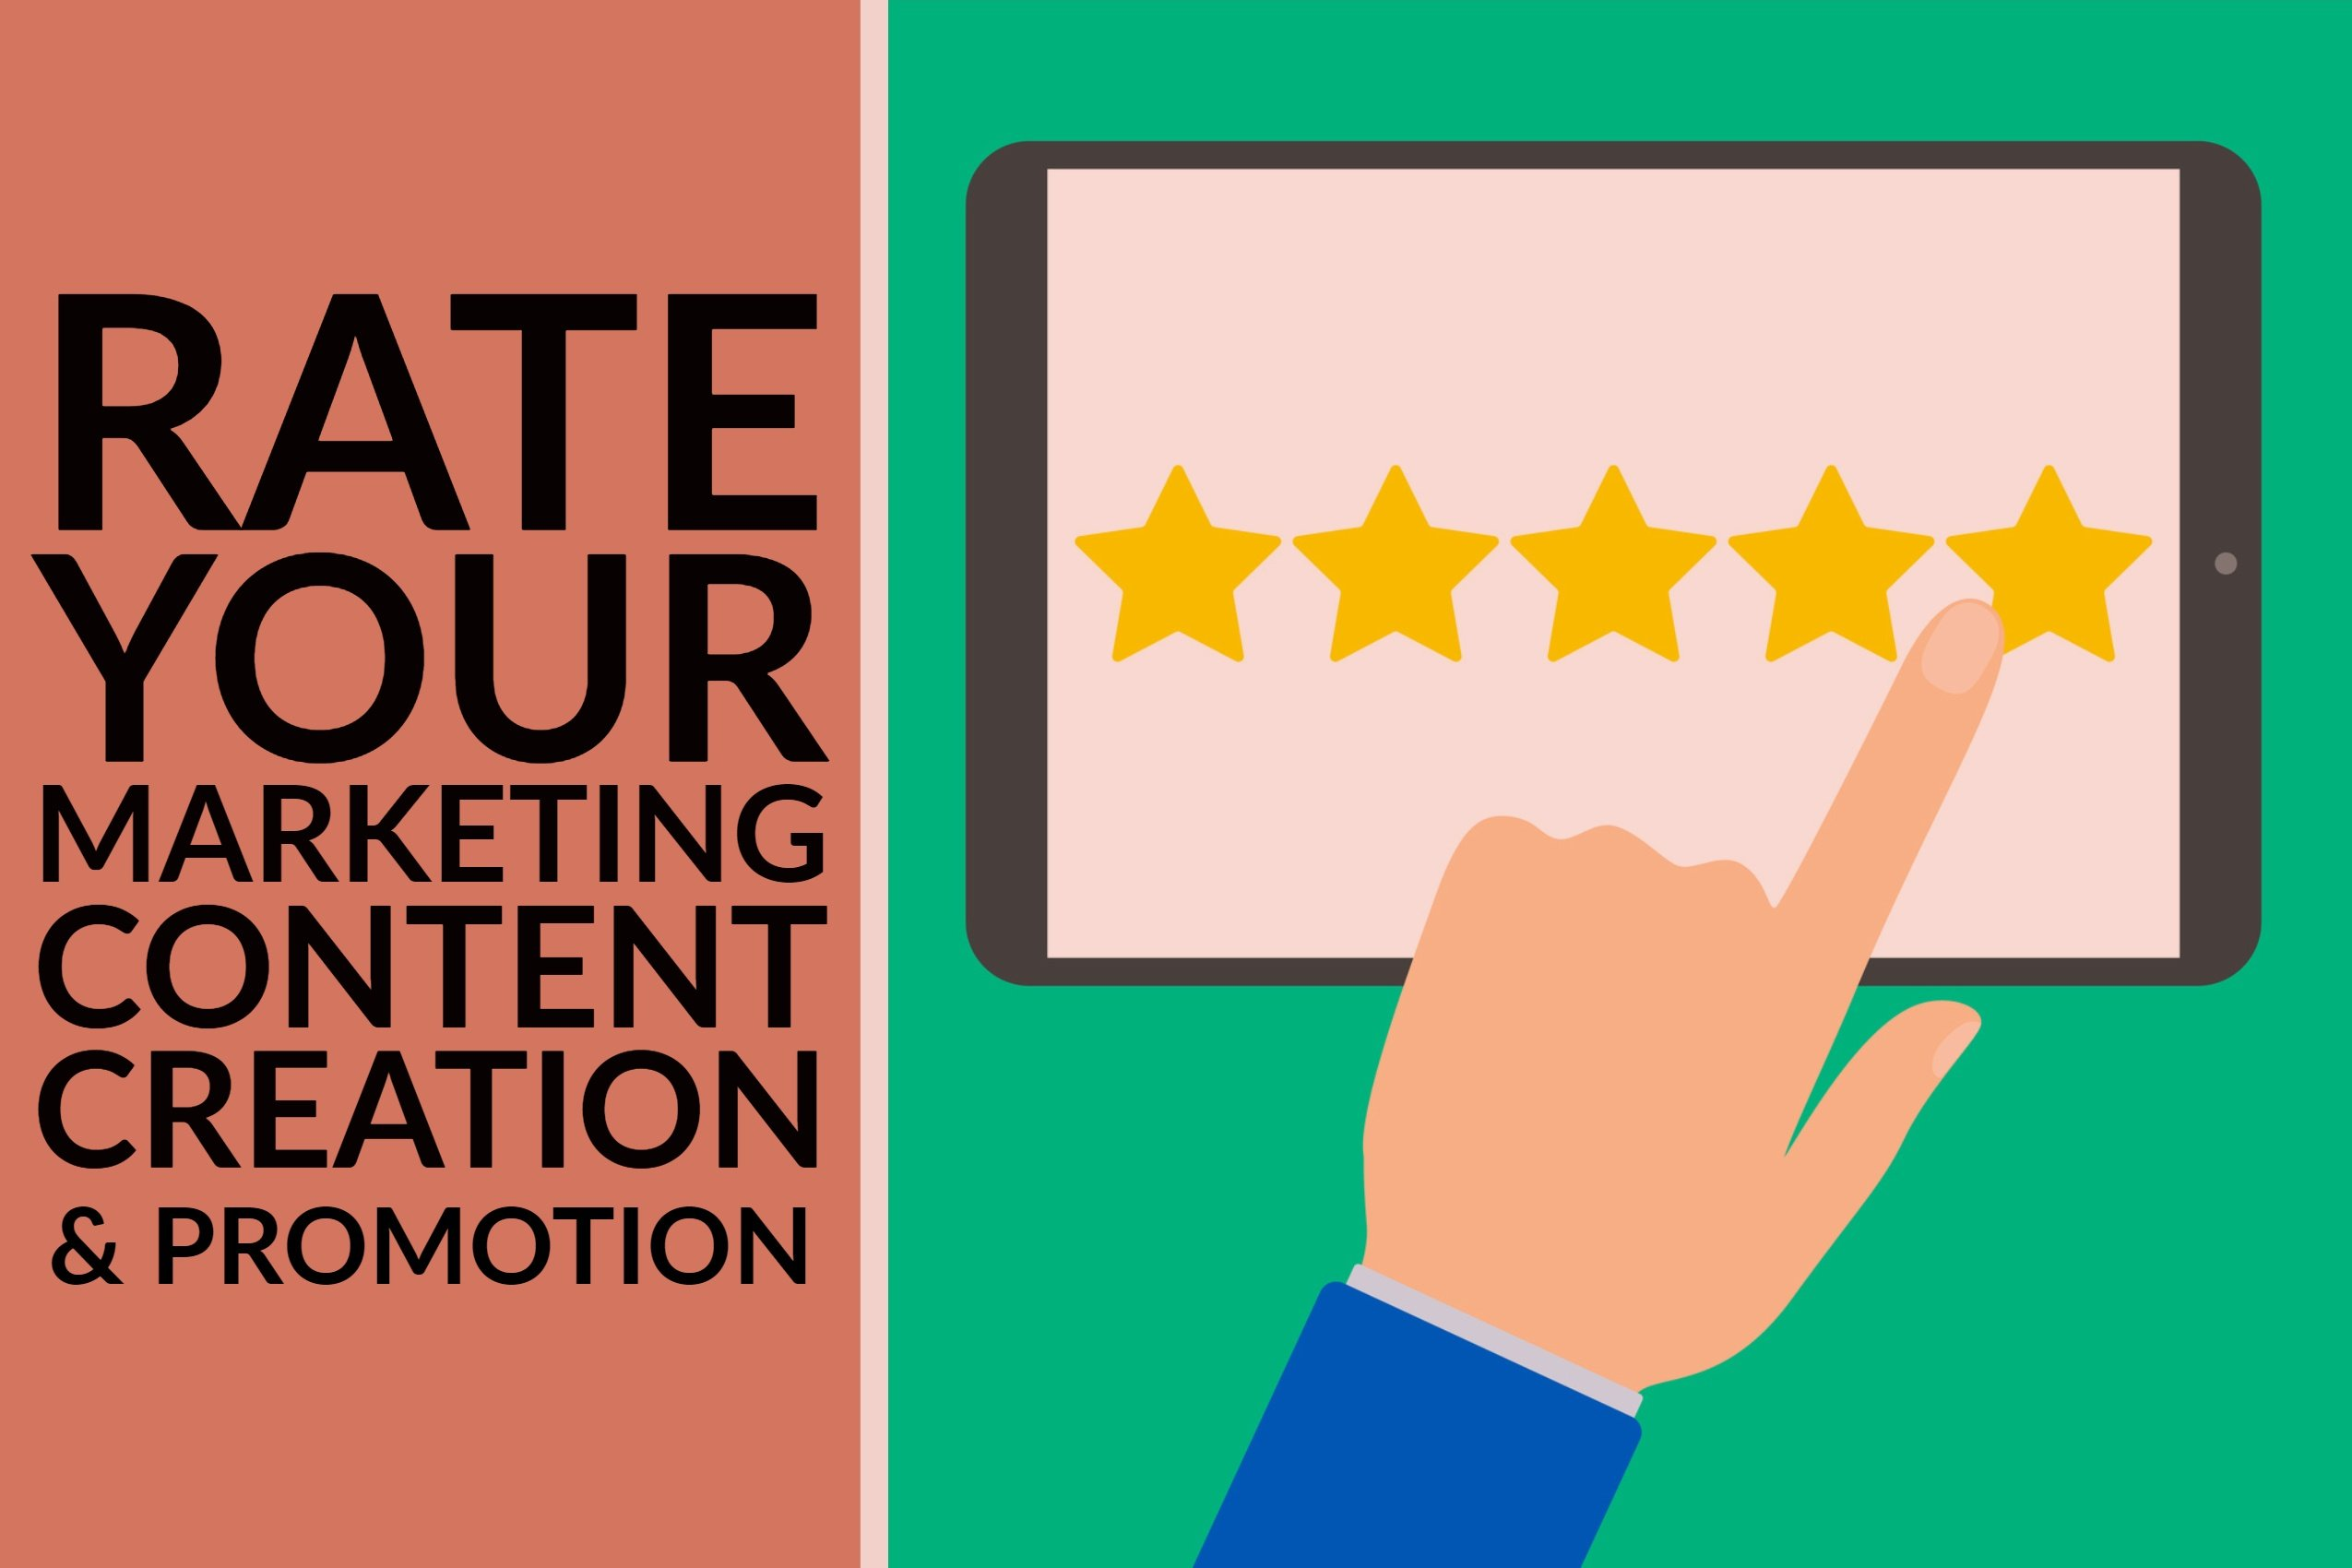 Rate Your Marketing Content Creation & Promotion